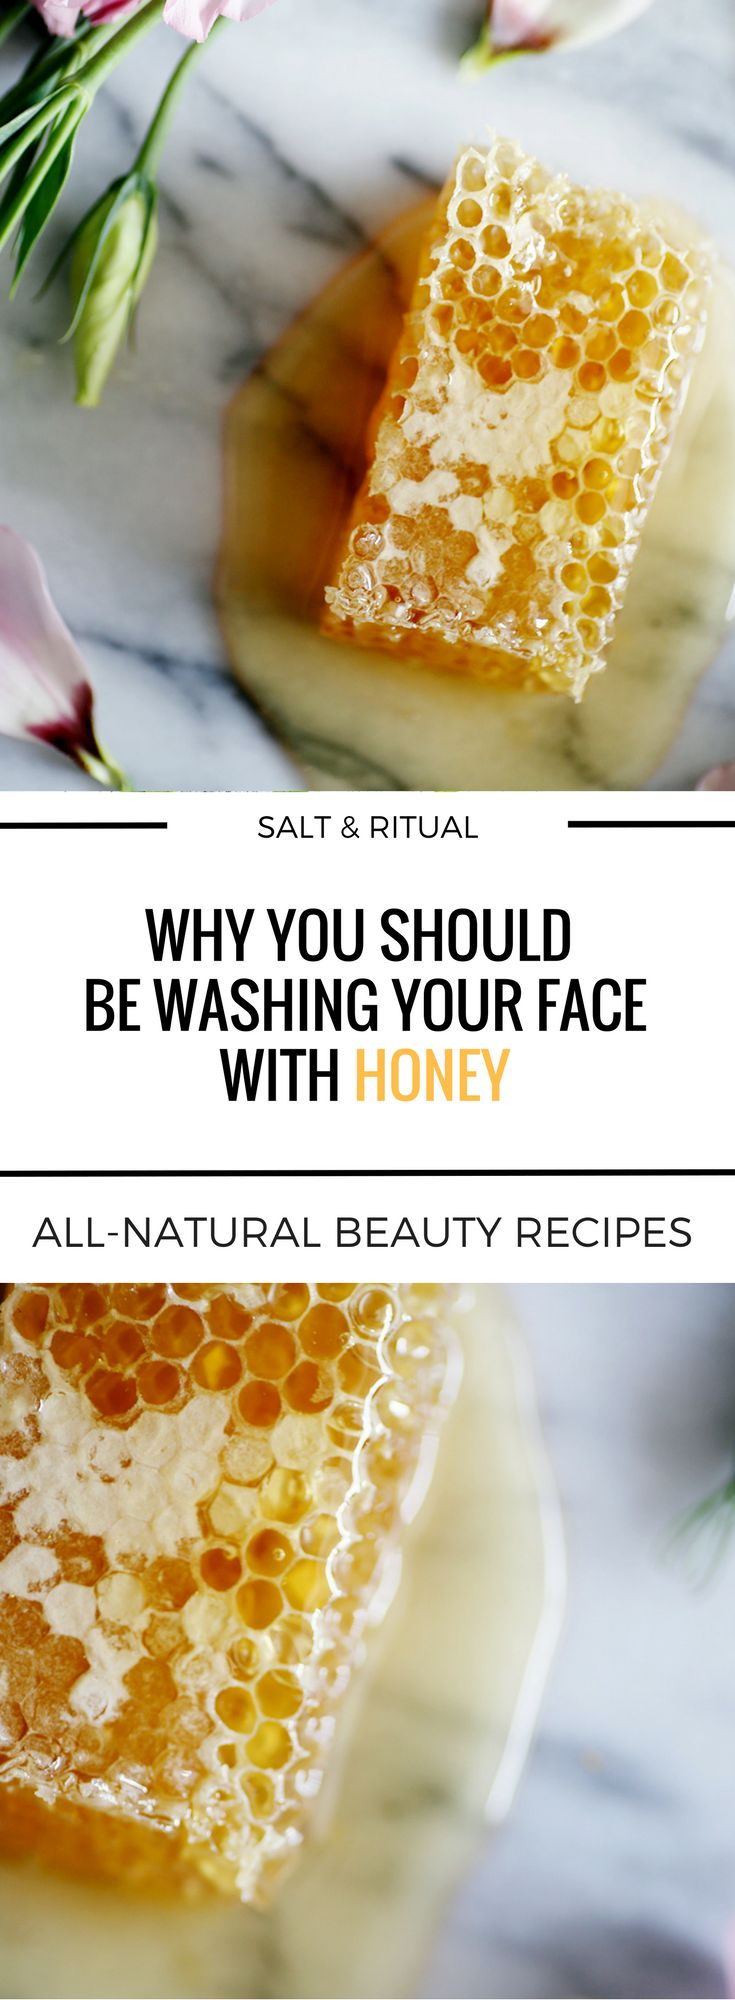 I'm all about the purest, most natural skincare products I can get my hands on.  That's why I've been using organic raw honey to wash my face for the last eight years.  It's the best and I don't think I could ever go back to using any kind of soap on my face or some fancy face-wash with tons of promises that never seem to come true.